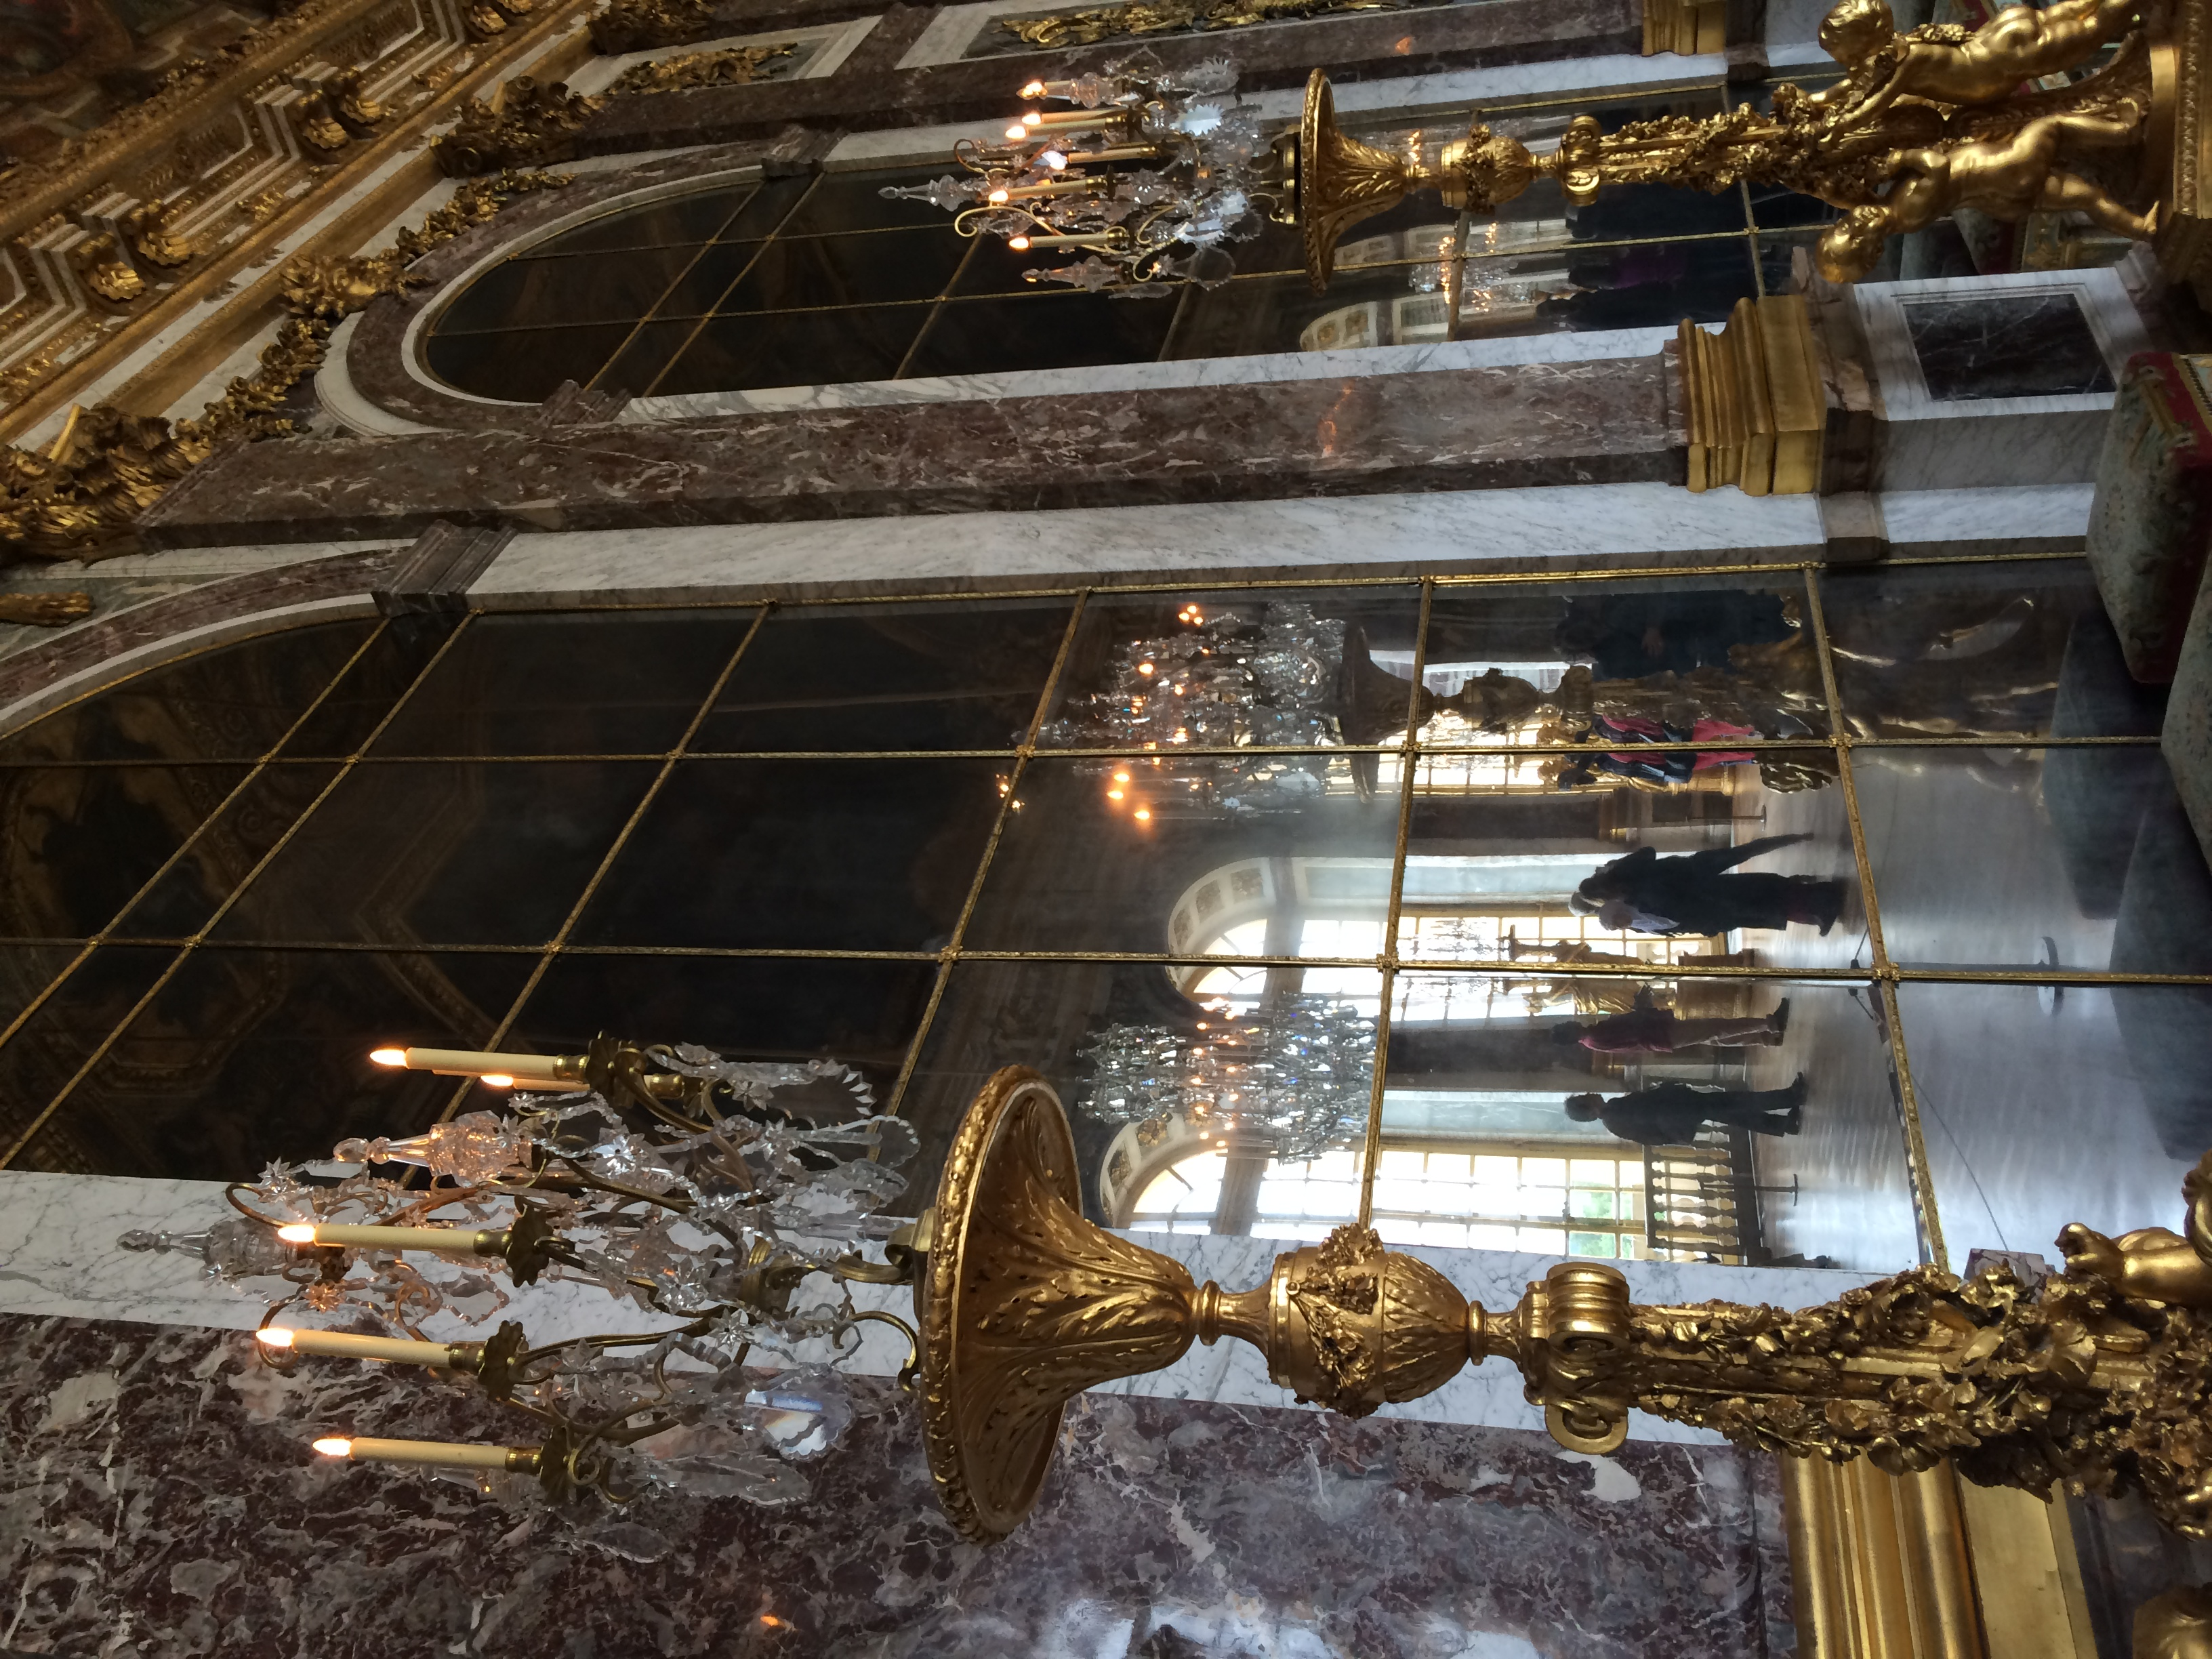 A mere corner in the Hall of Mirrors. During the 18th century, mirrors were very expensive to install, so I can only imagine what it cost to install a huge corridor like this one with such pricey material!